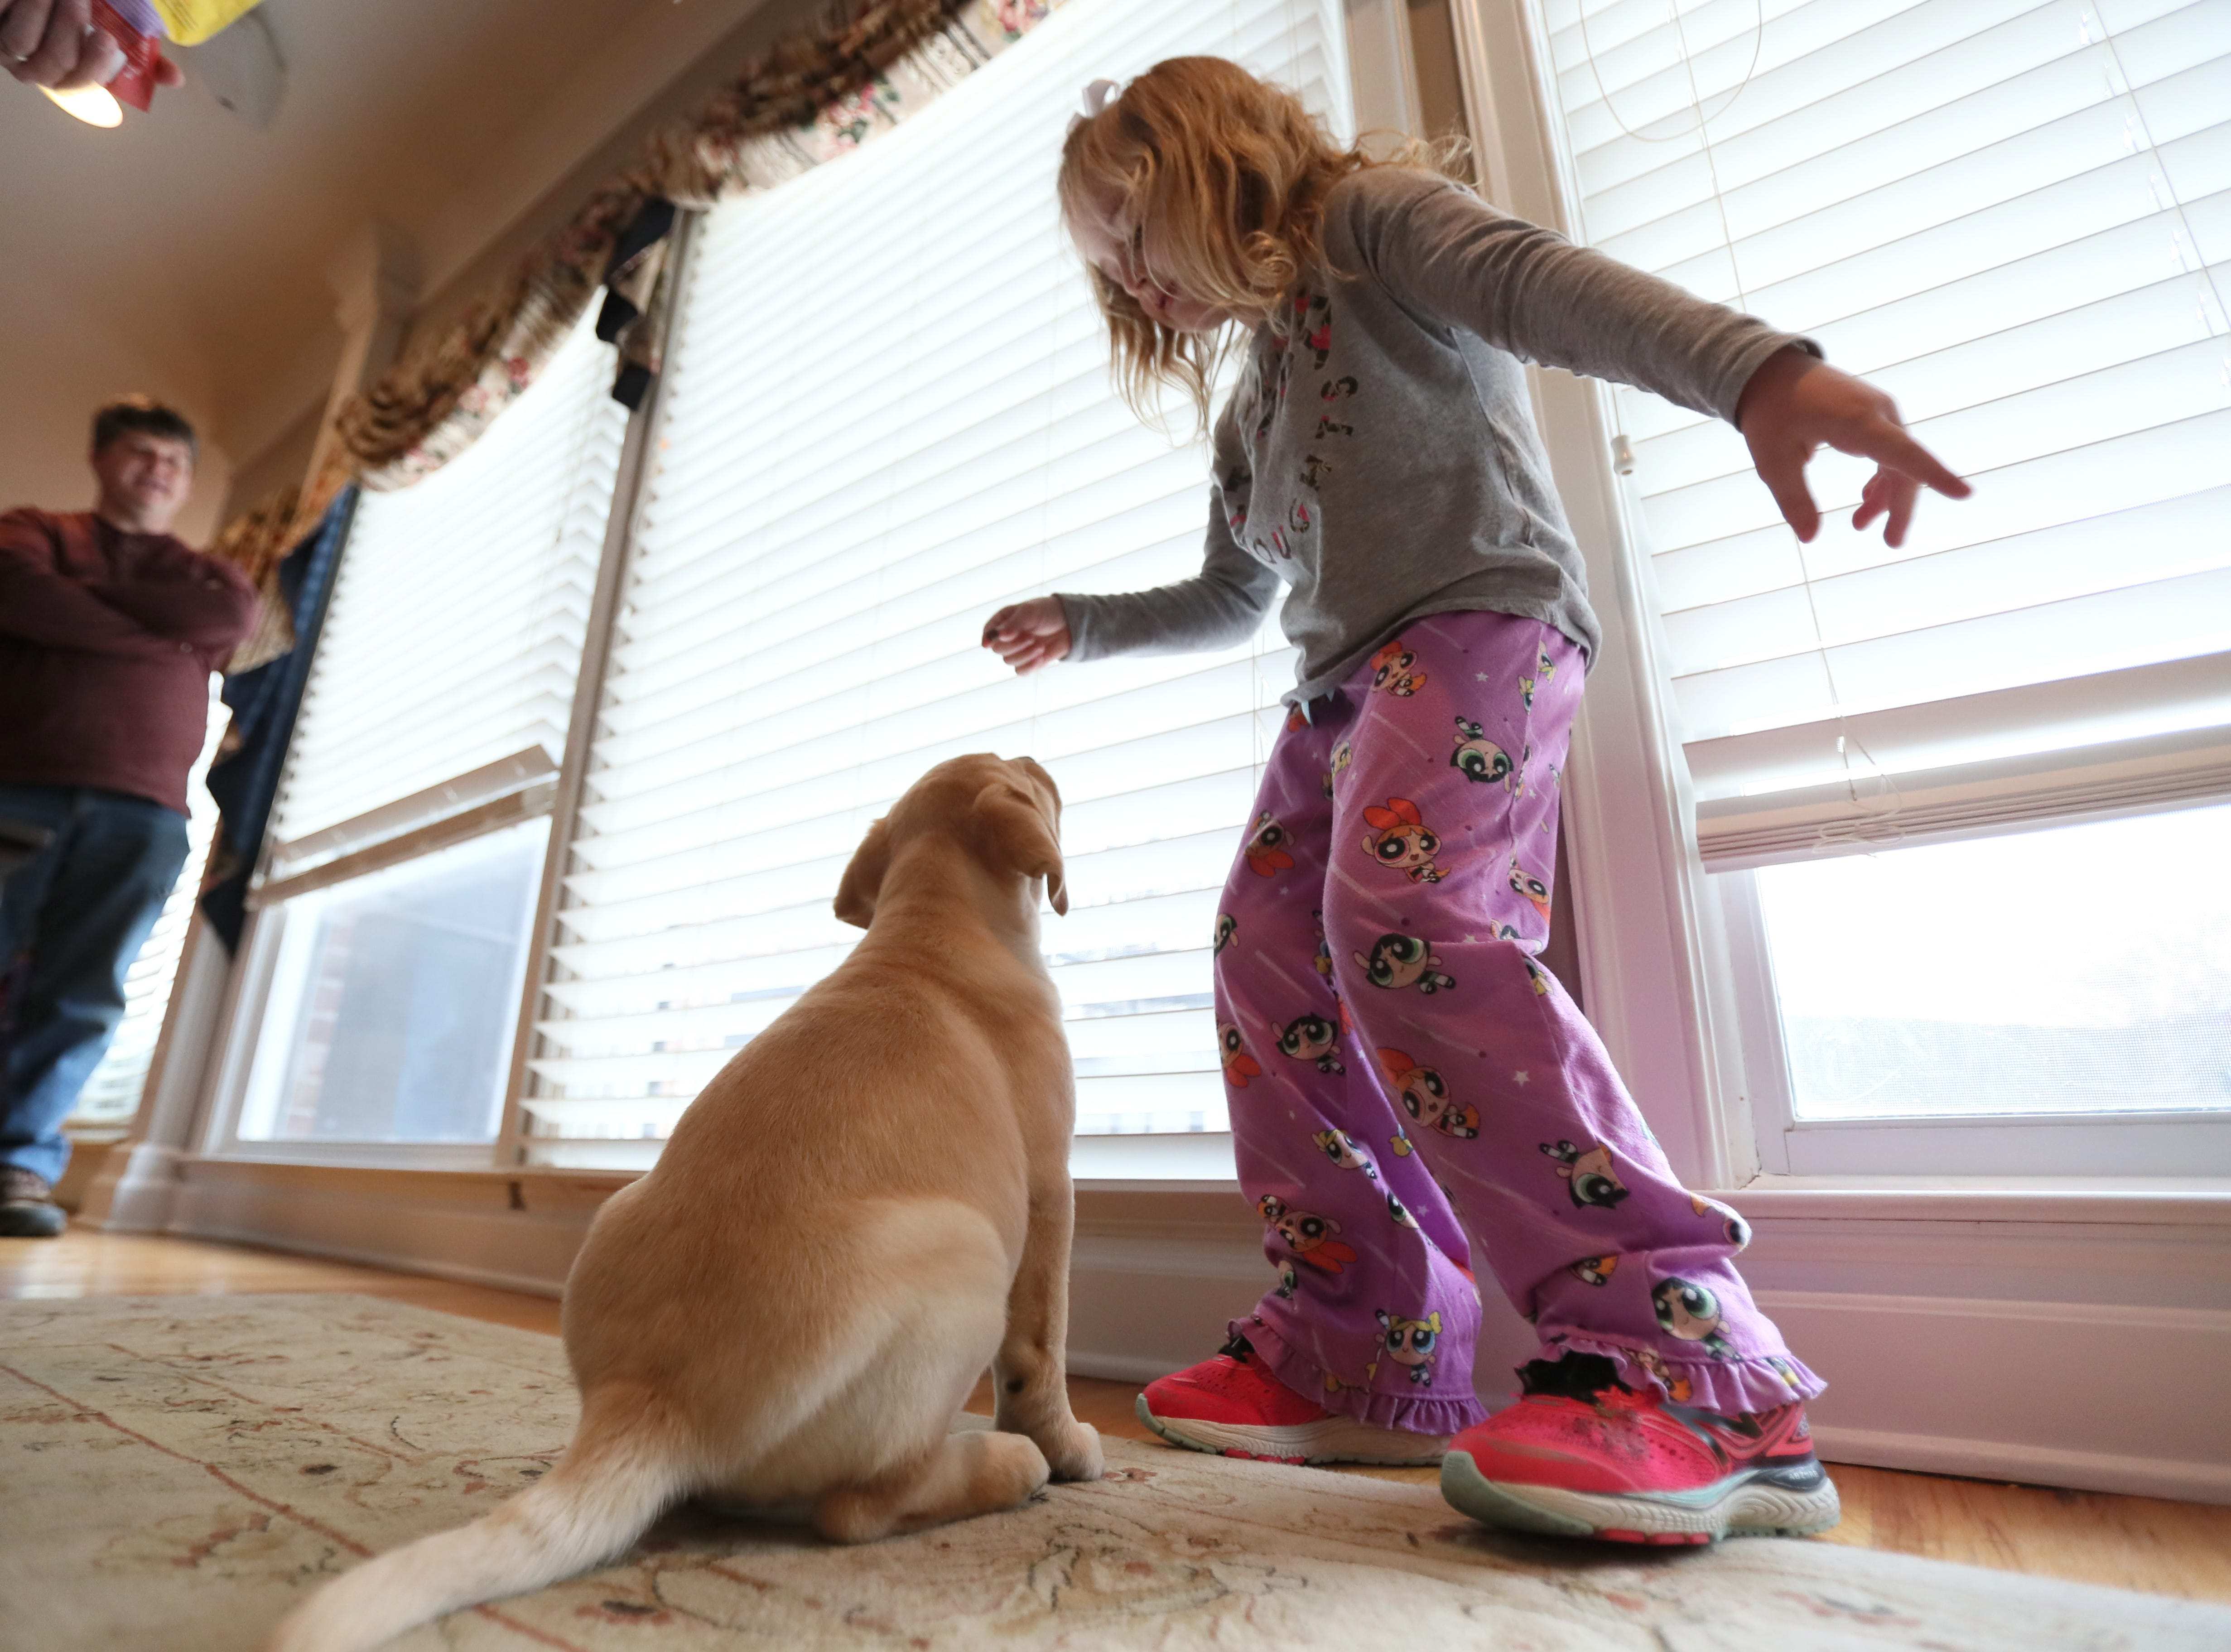 Ava Reed, 6, plays with her new puppy Maggie at the family's Arlington home on Friday, Feb. 1, 2019. Ava received Maggie, who though only eight weeks old, is going through training from Jeff Tawater, left, the executive director of K9 Direction, to be her service animal after an outpouring of community support helped raise the over $10,000 required for her training and equipment.